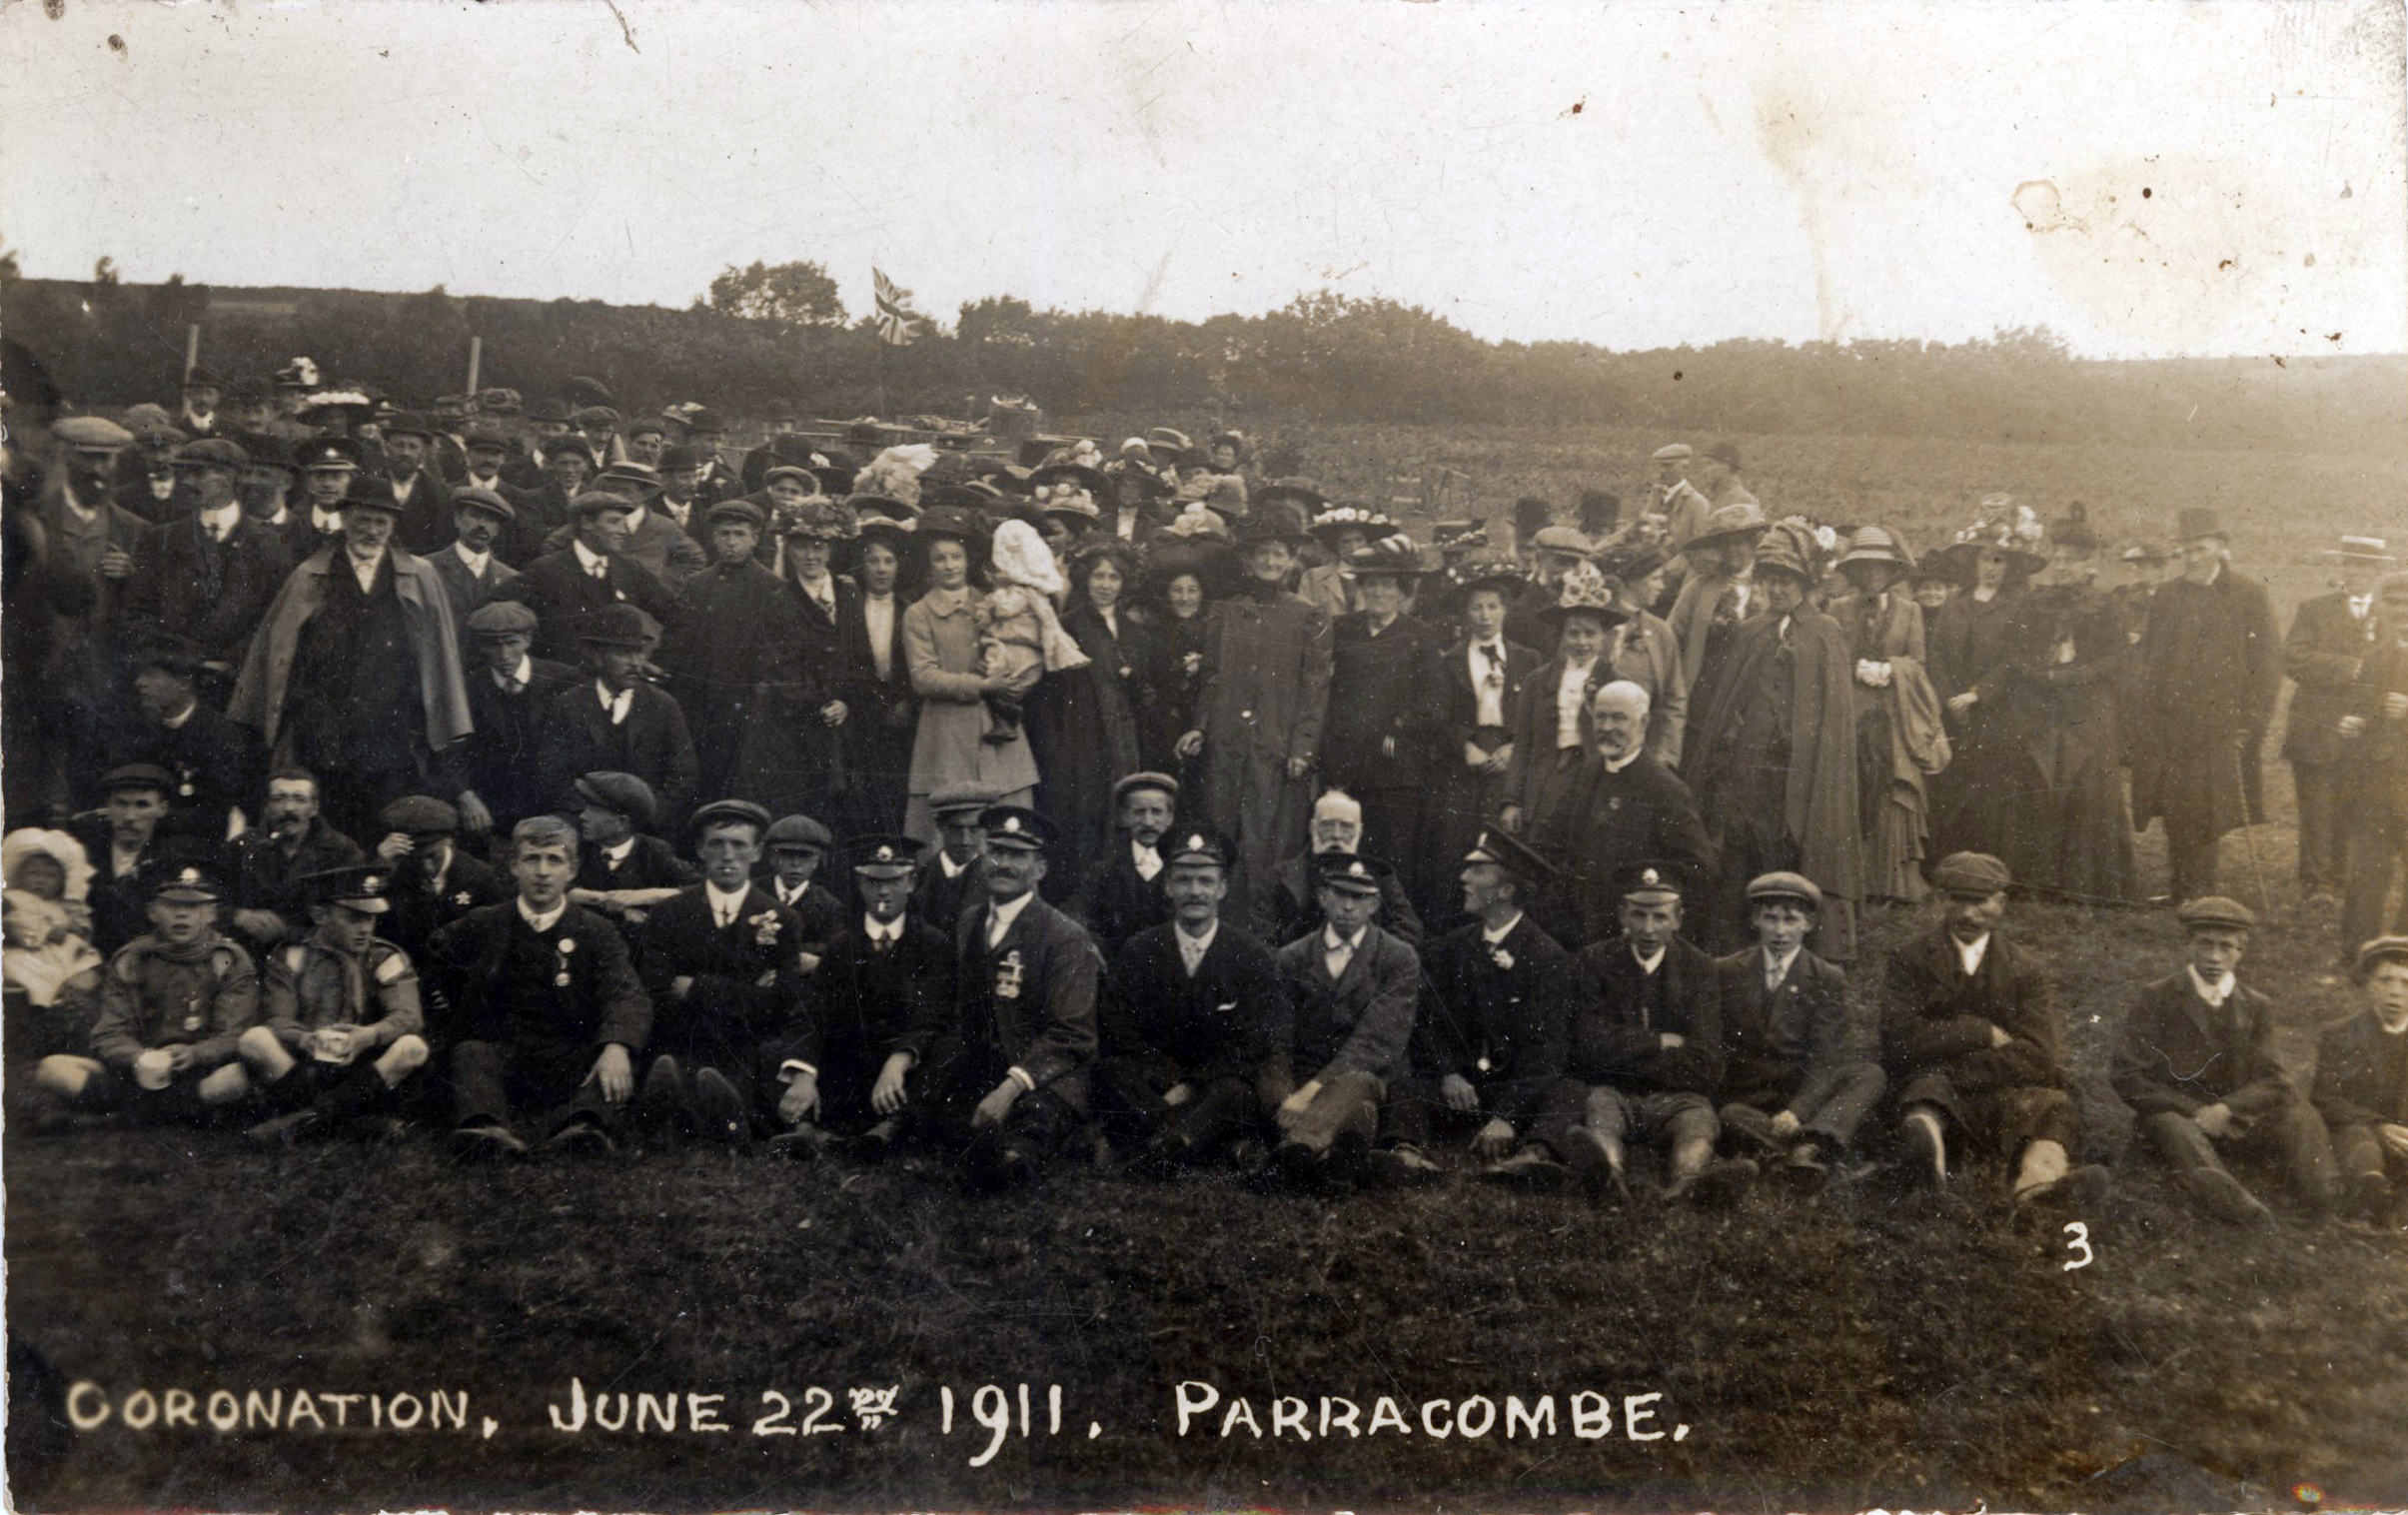 1911 Coronation Parracombe Villagers - kind permission of Allan Shute